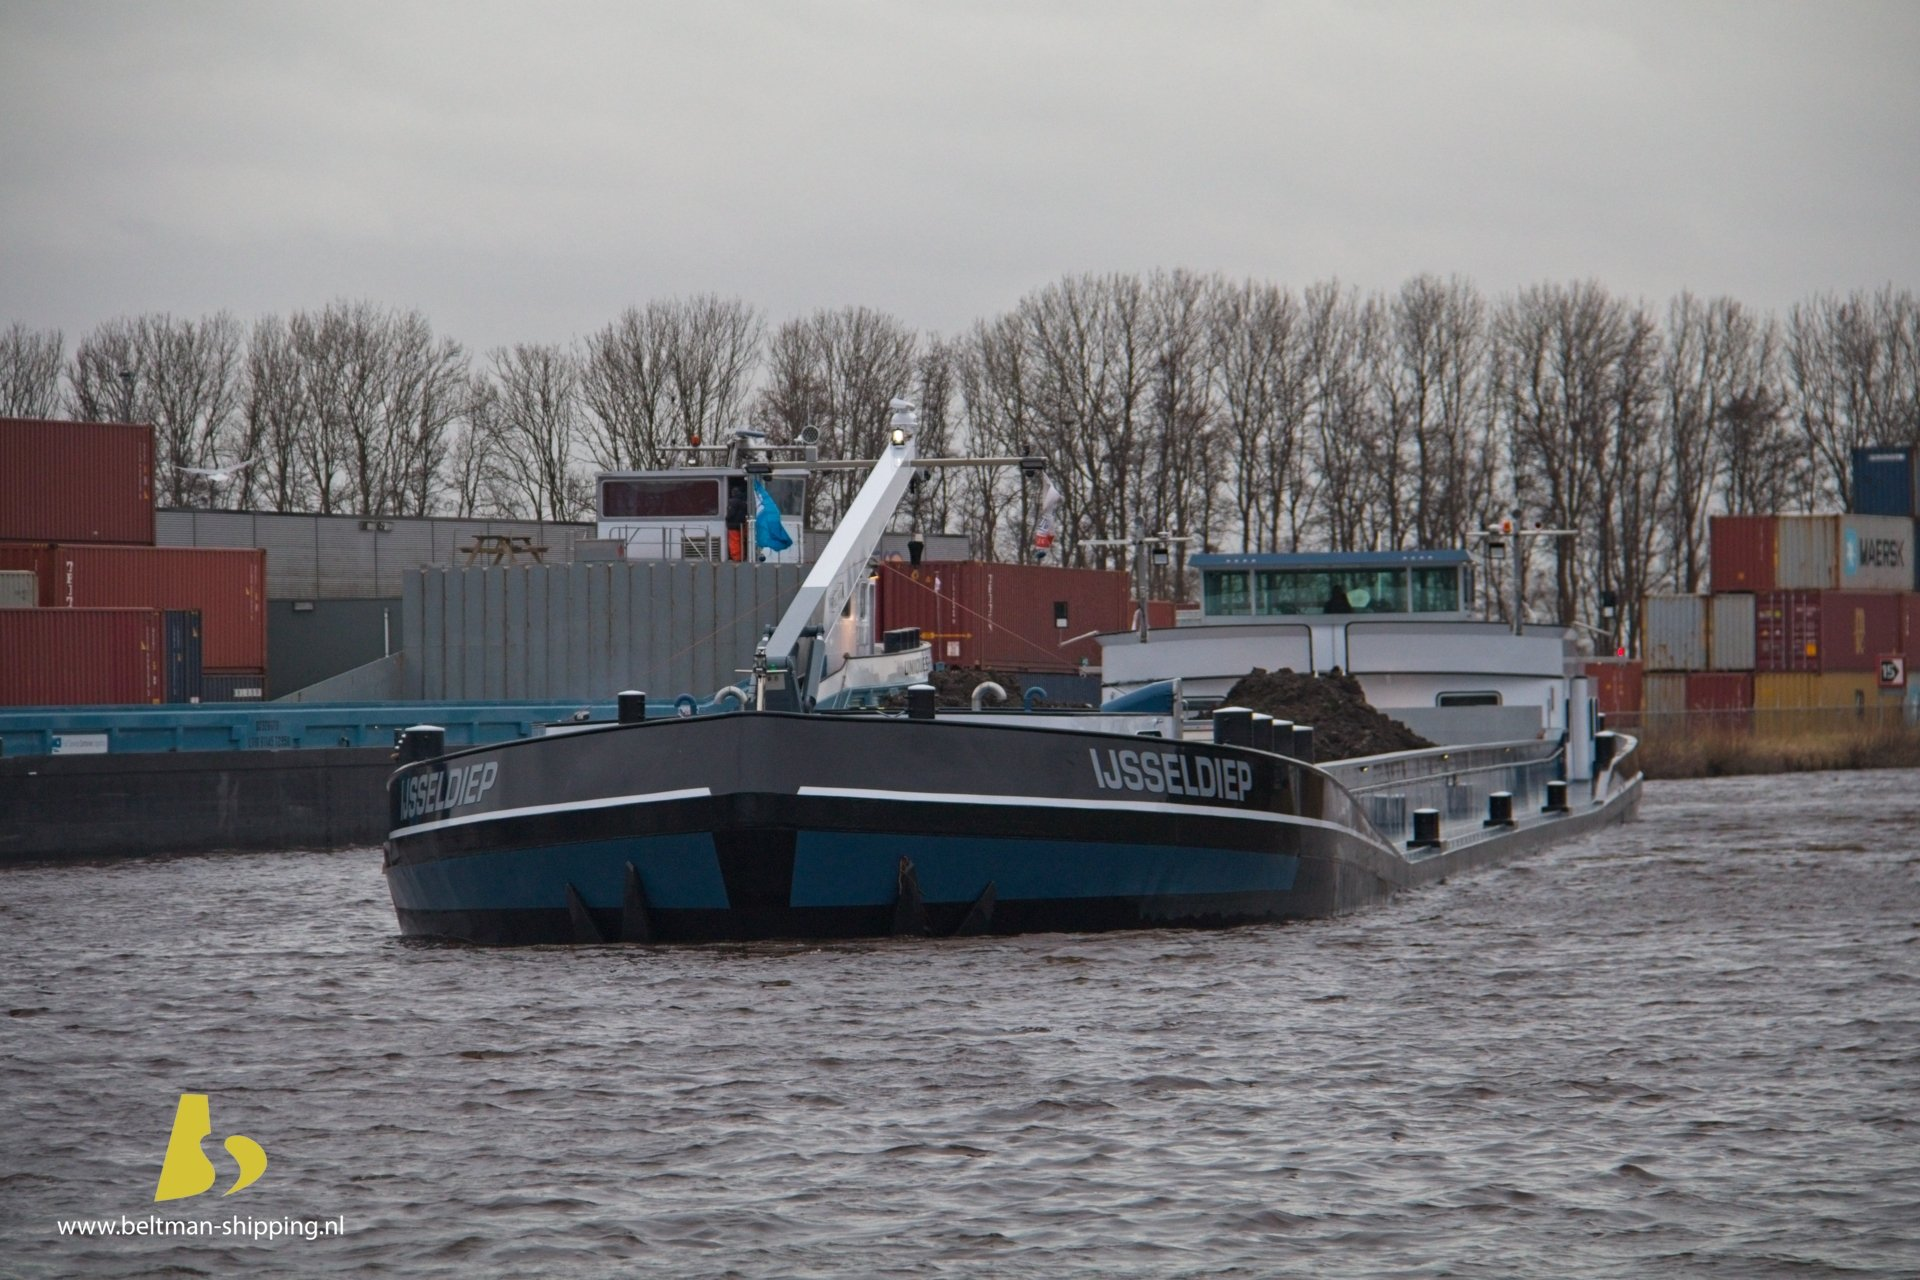 IJsseldiep-02318245-21-02-2020-IMG_7880